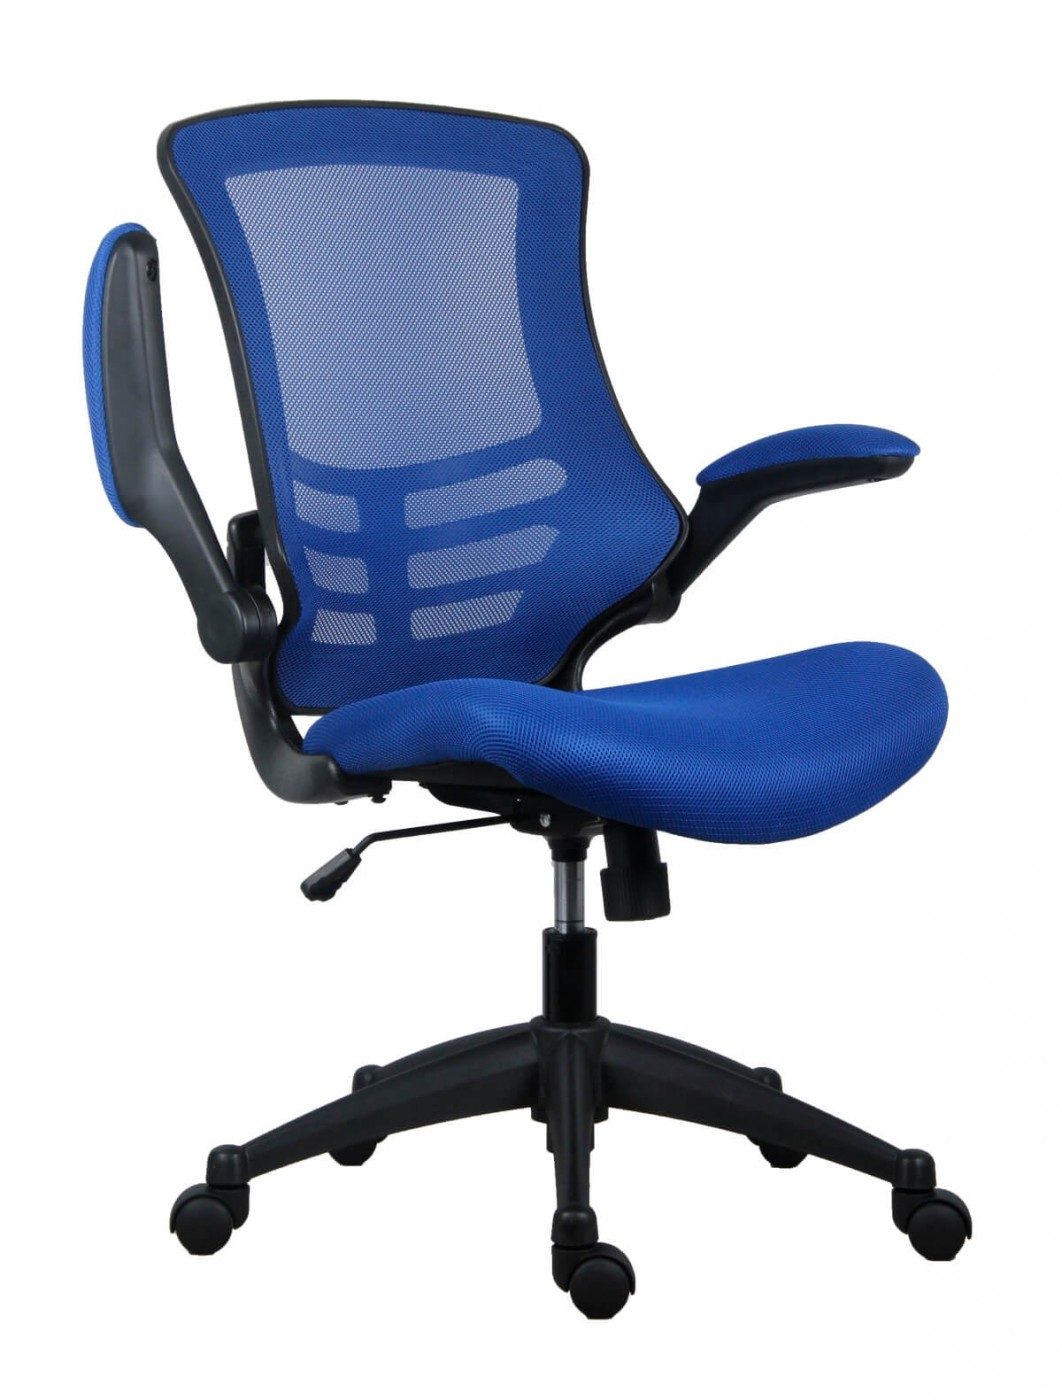 Office Chairs Marlos Mesh Office Chair In Blue CH0790BL 121 Office Furniture